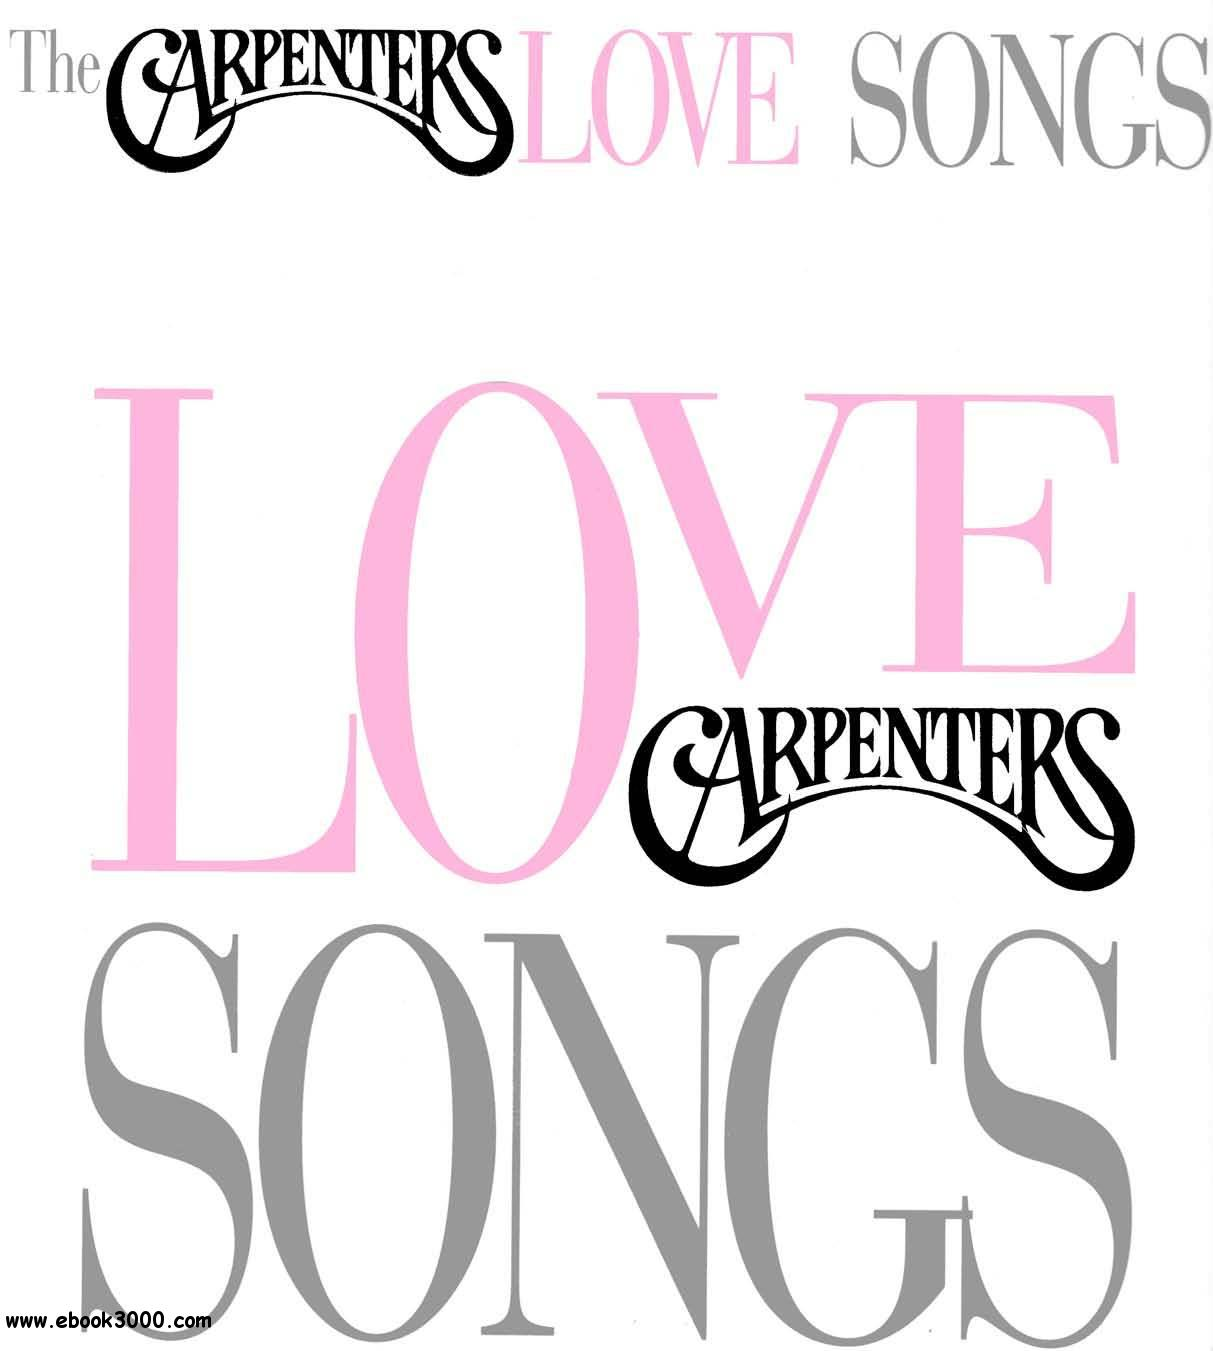 The Carpenters - Love Songs free download